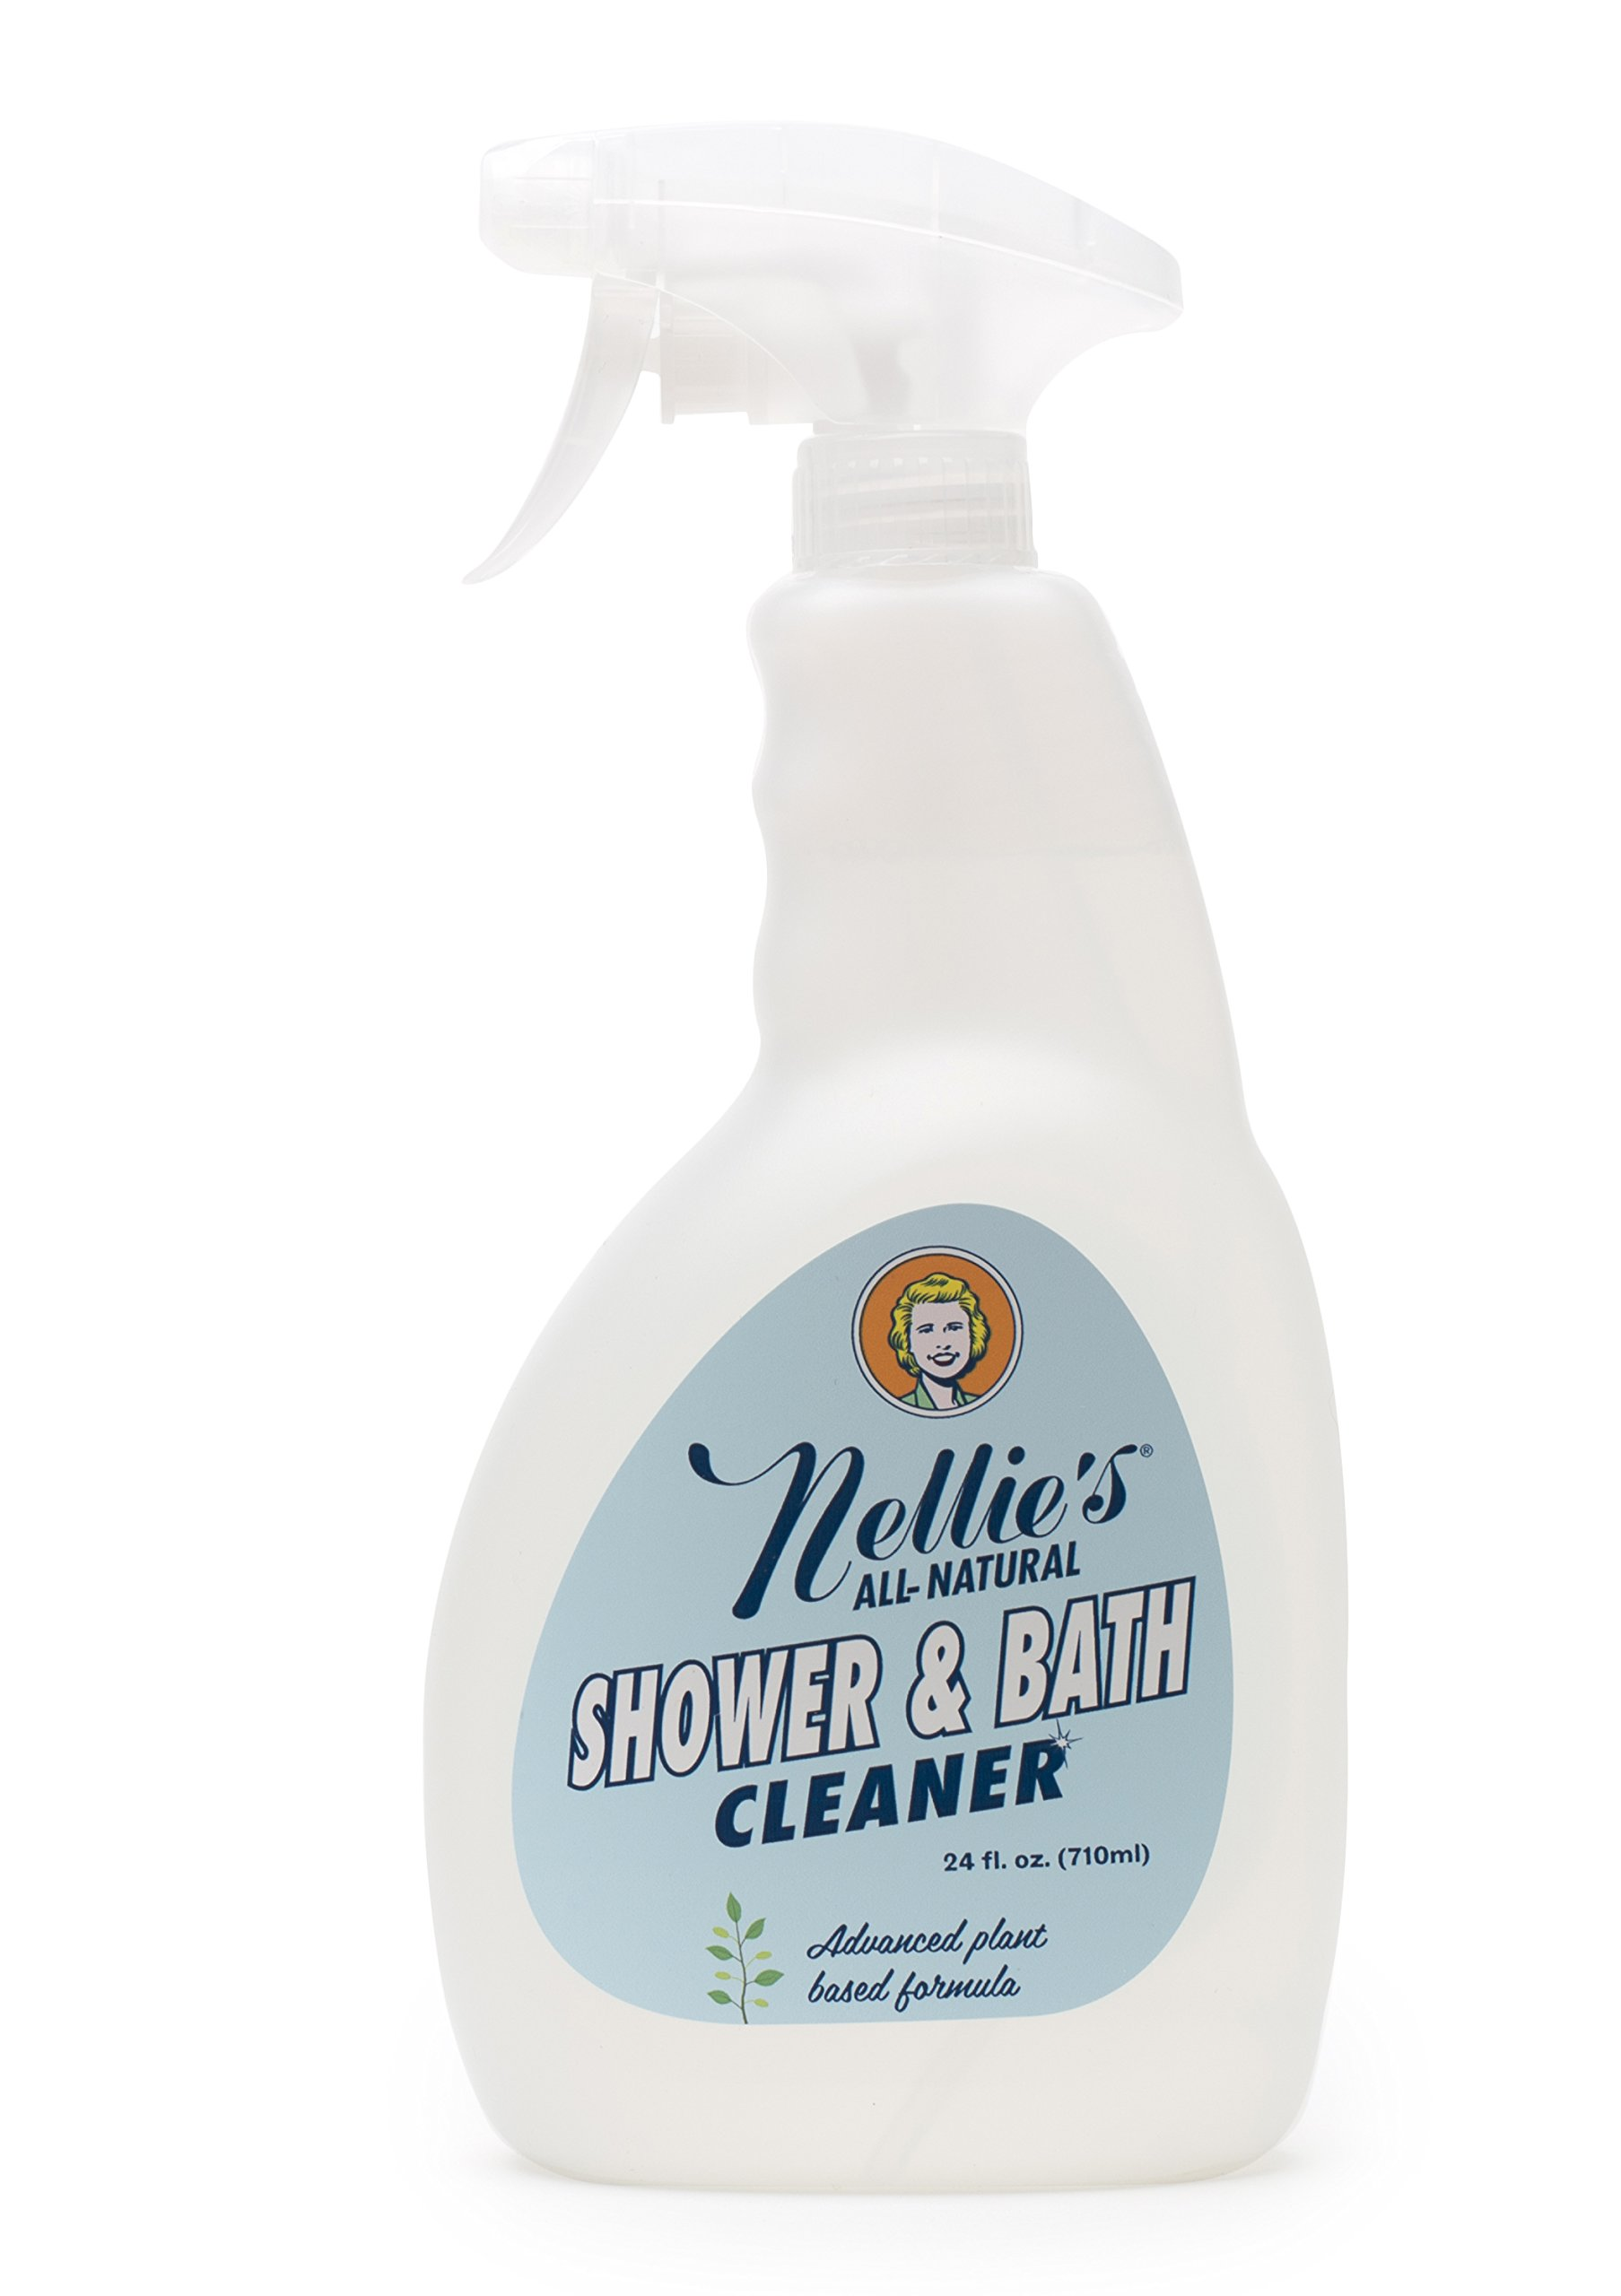 Nellie's All-Natural Shower and Bath Cleaner - Exceptional Green Cleaning Power + Eliminate Stubborn Bathroom Mold and Mildew + Free From Harsh Chemicals! by Nellie's All-Natural